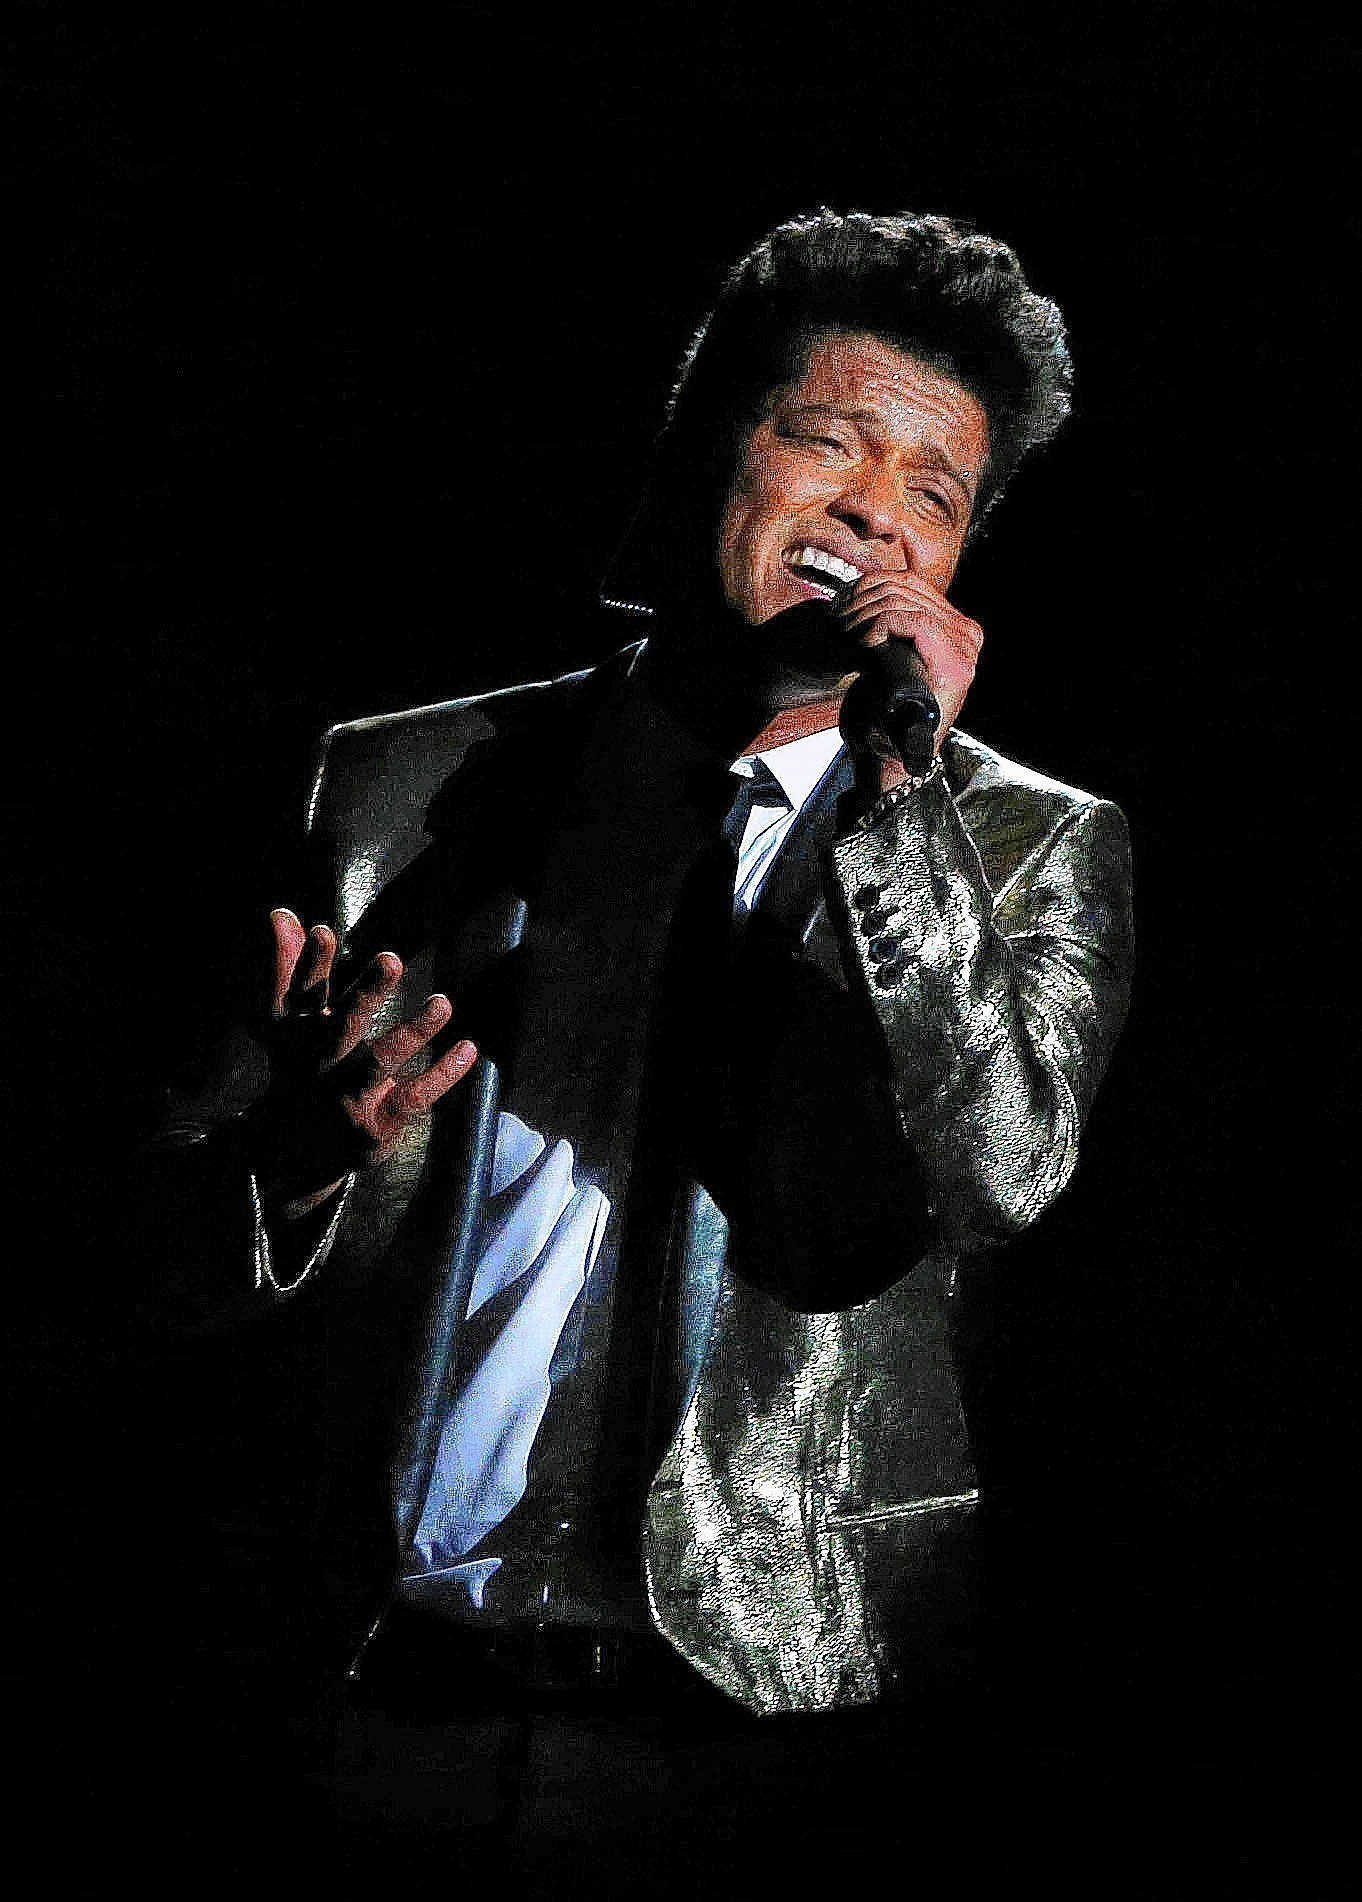 bruno mars concert review at tinley park chicago tribune bruno news newslocker. Black Bedroom Furniture Sets. Home Design Ideas